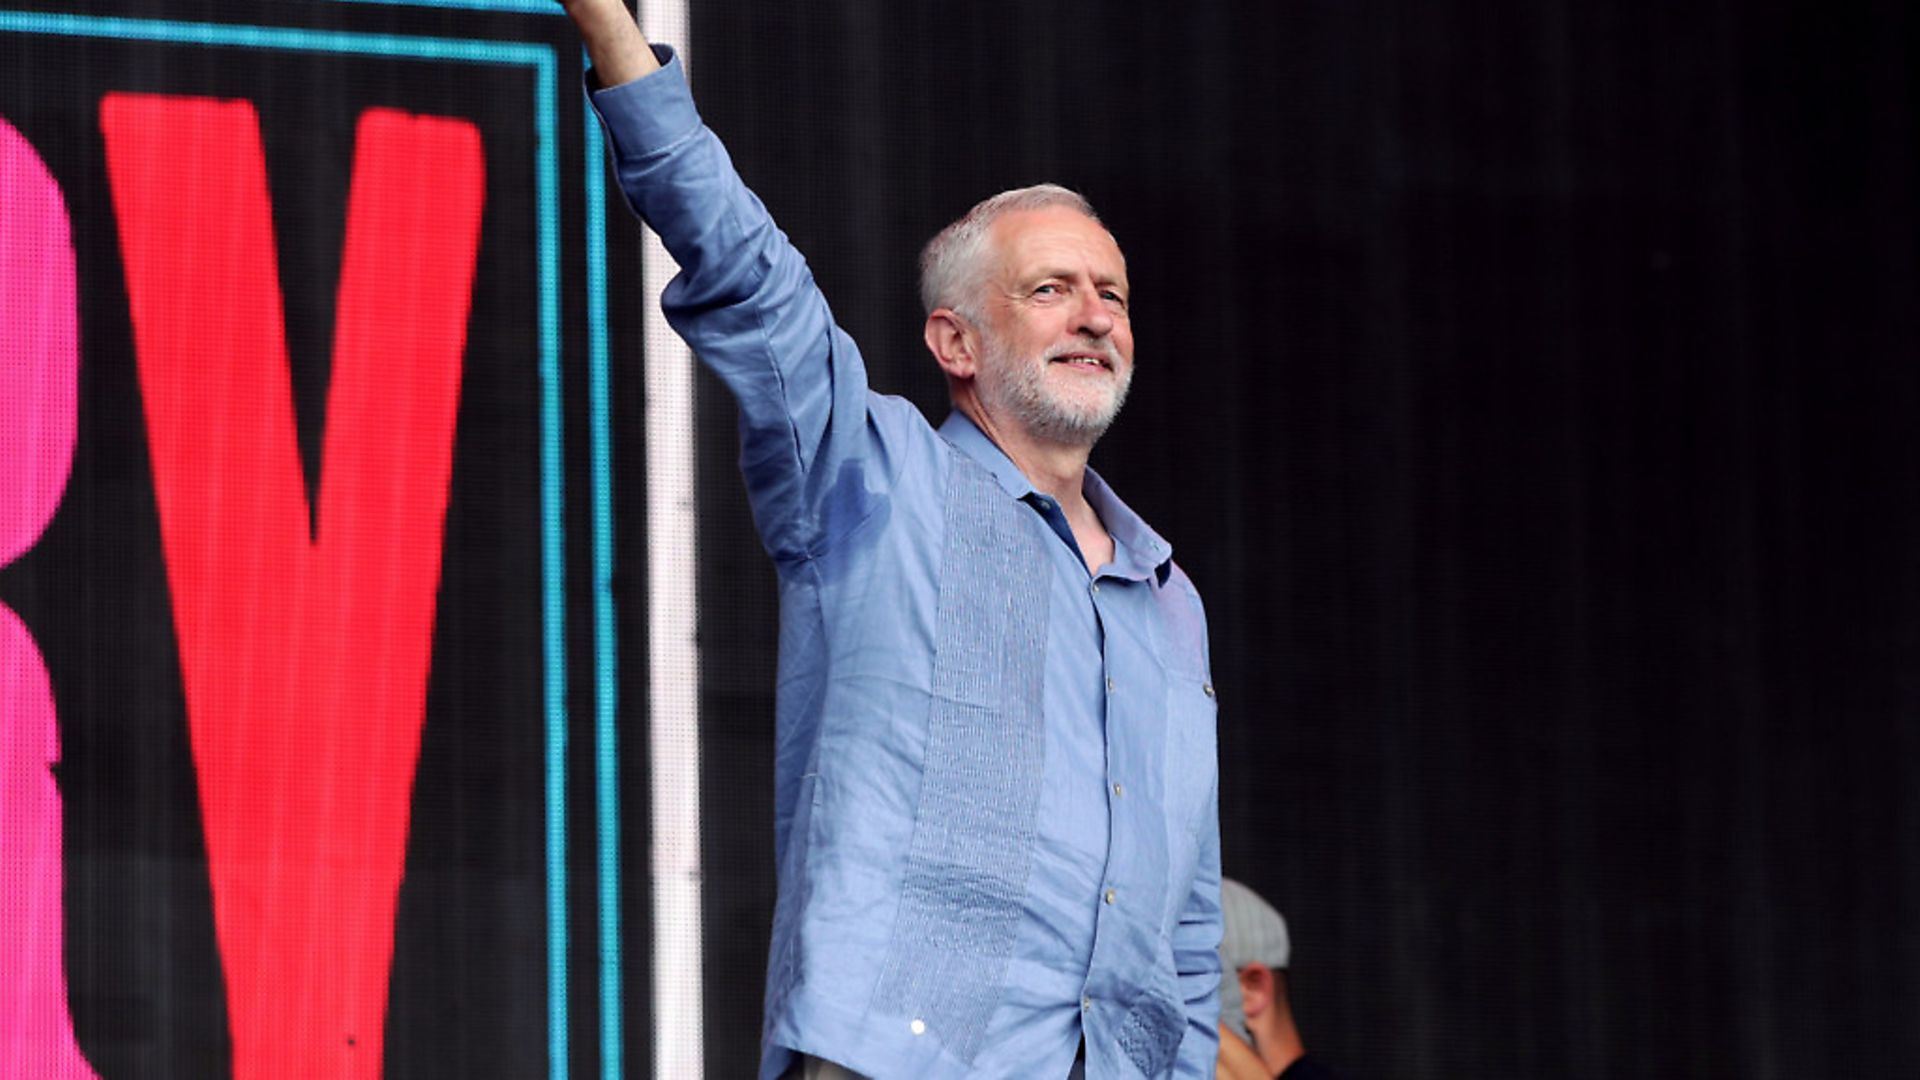 Labour leader Jeremy Corbyn speaks to the crowd from the Pyramid stage at Glastonbury Festival, at Worthy Farm in Somerset. - Credit: PA Wire/PA Images